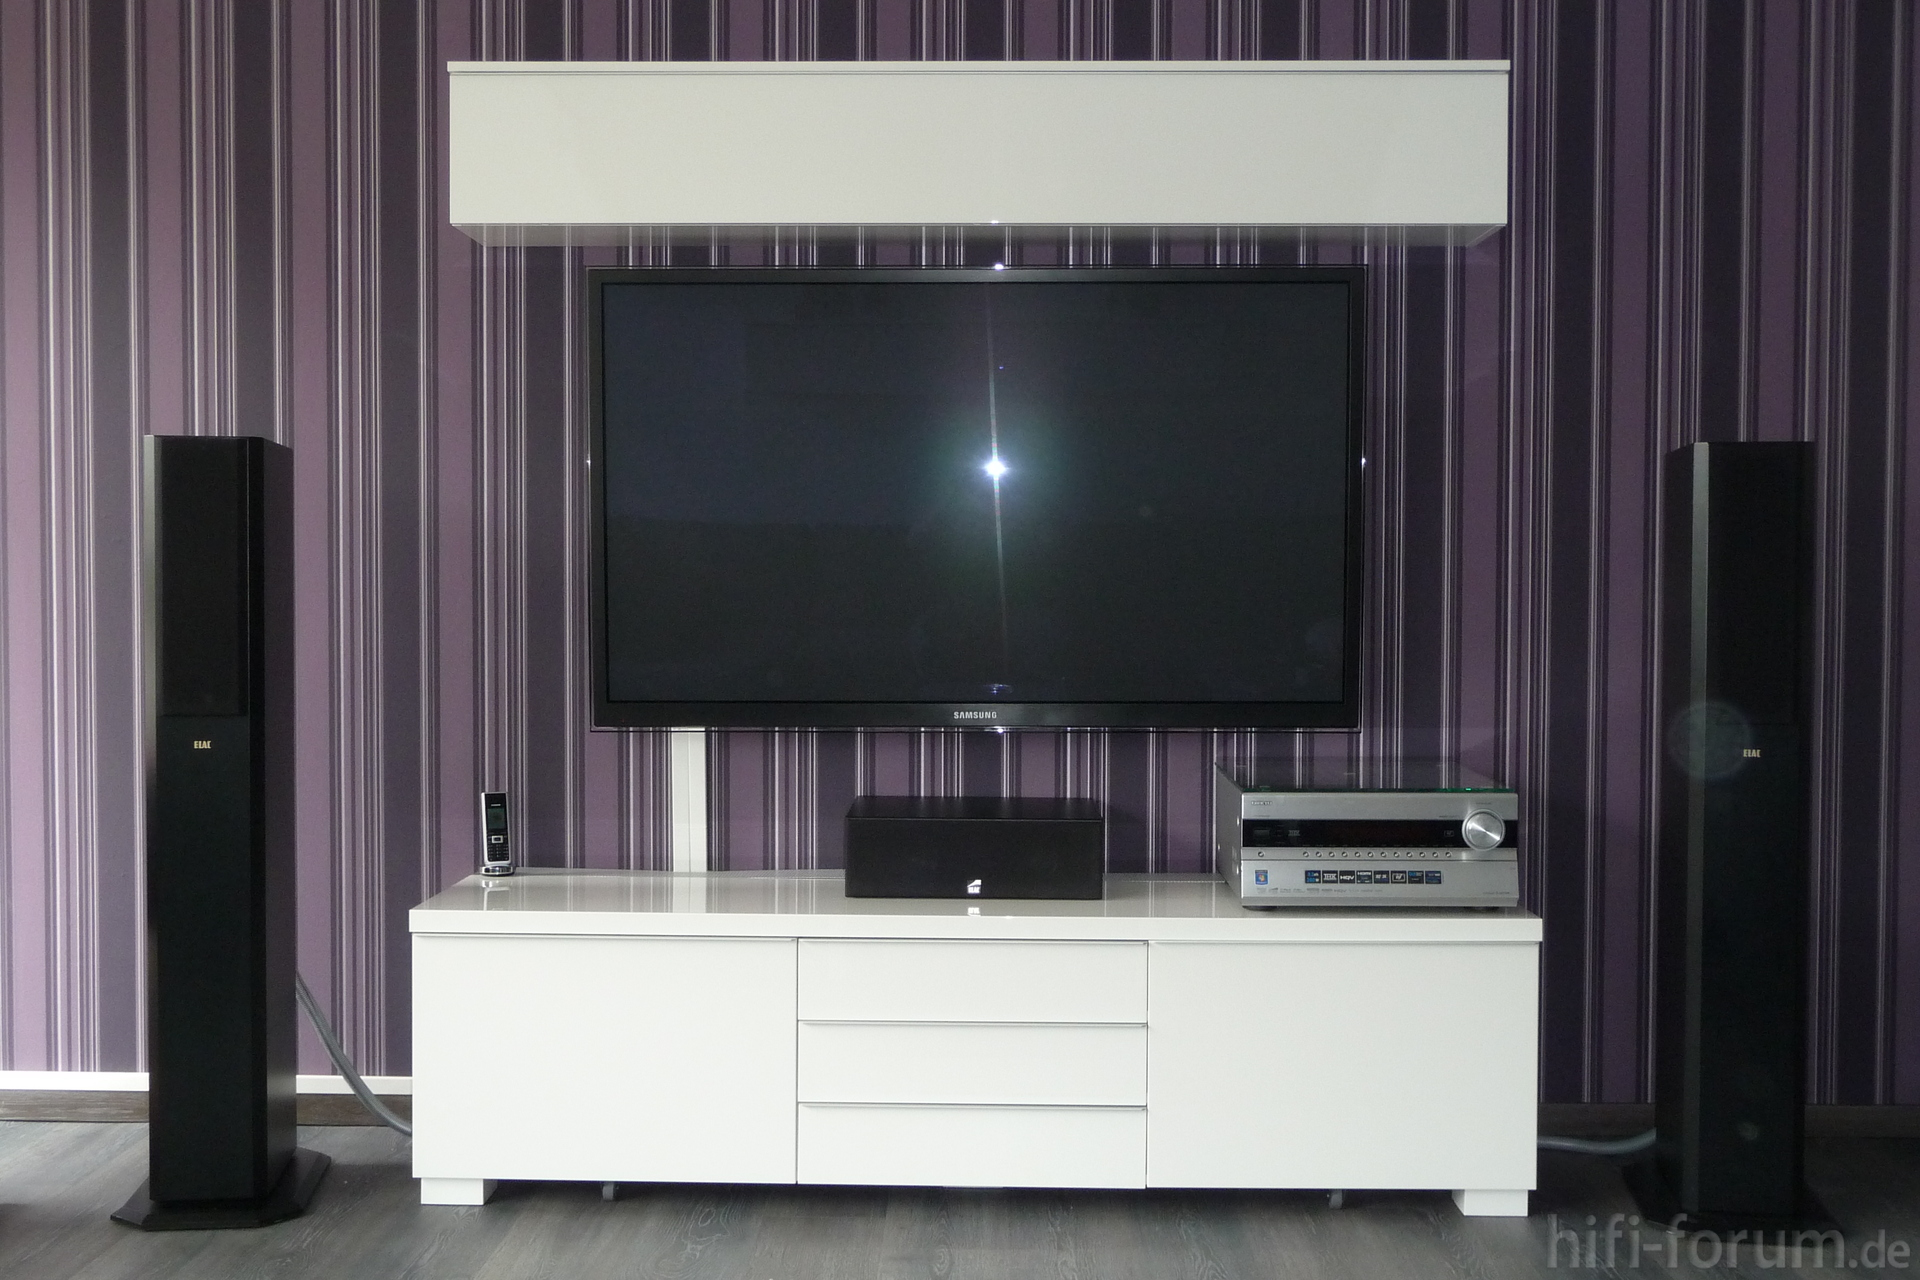 ps59d7000 mt ikea tv m bel heimkino ikea mt ps59d7000. Black Bedroom Furniture Sets. Home Design Ideas